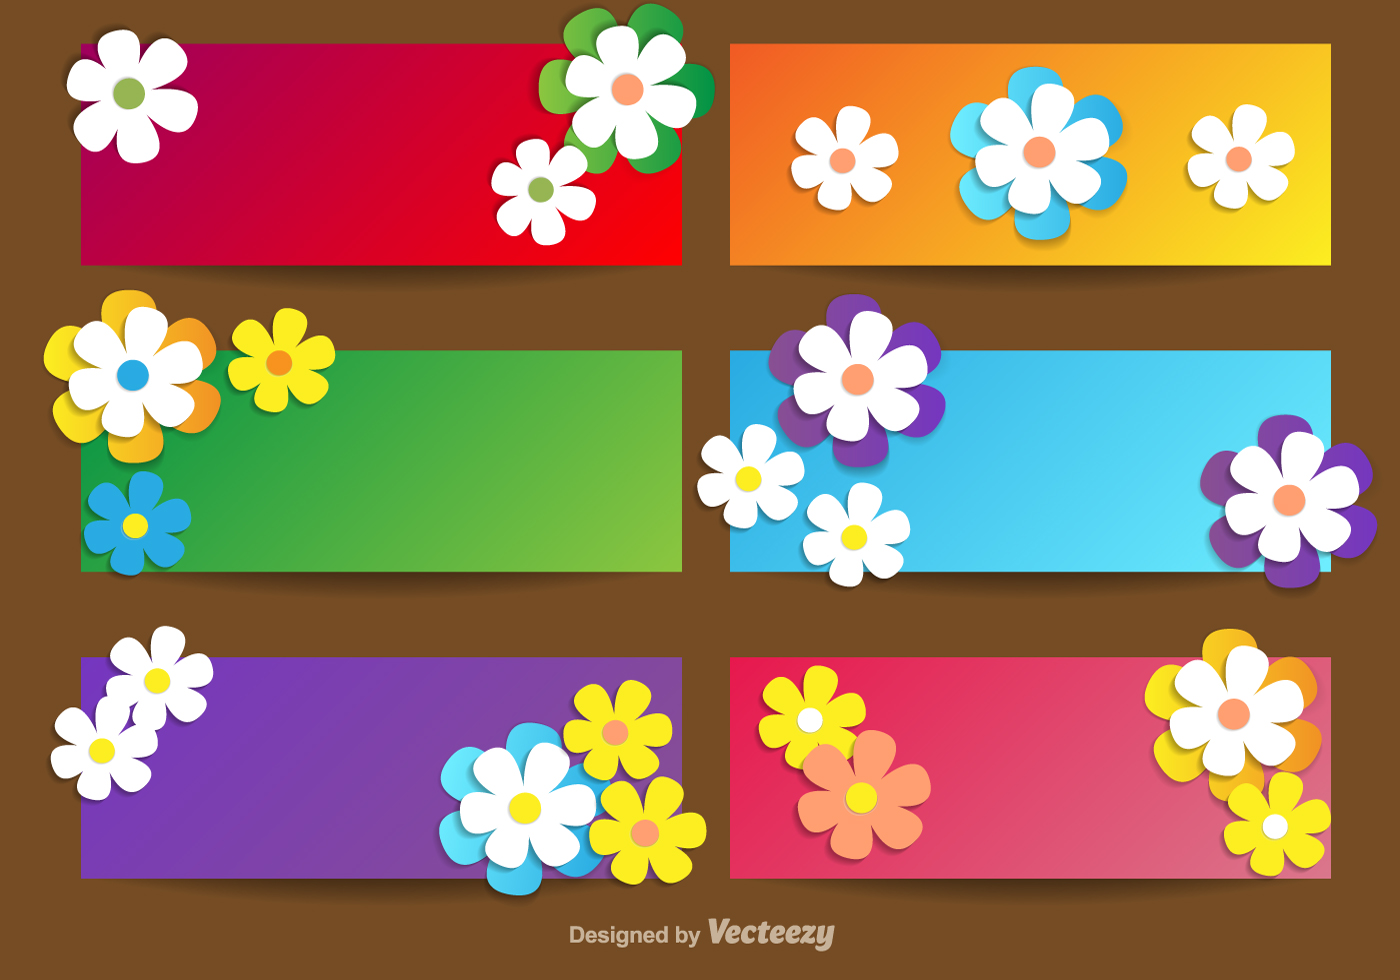 Vector Banners With Flowers For Spring Season Download Free Vector Art Stock Graphics Amp Images